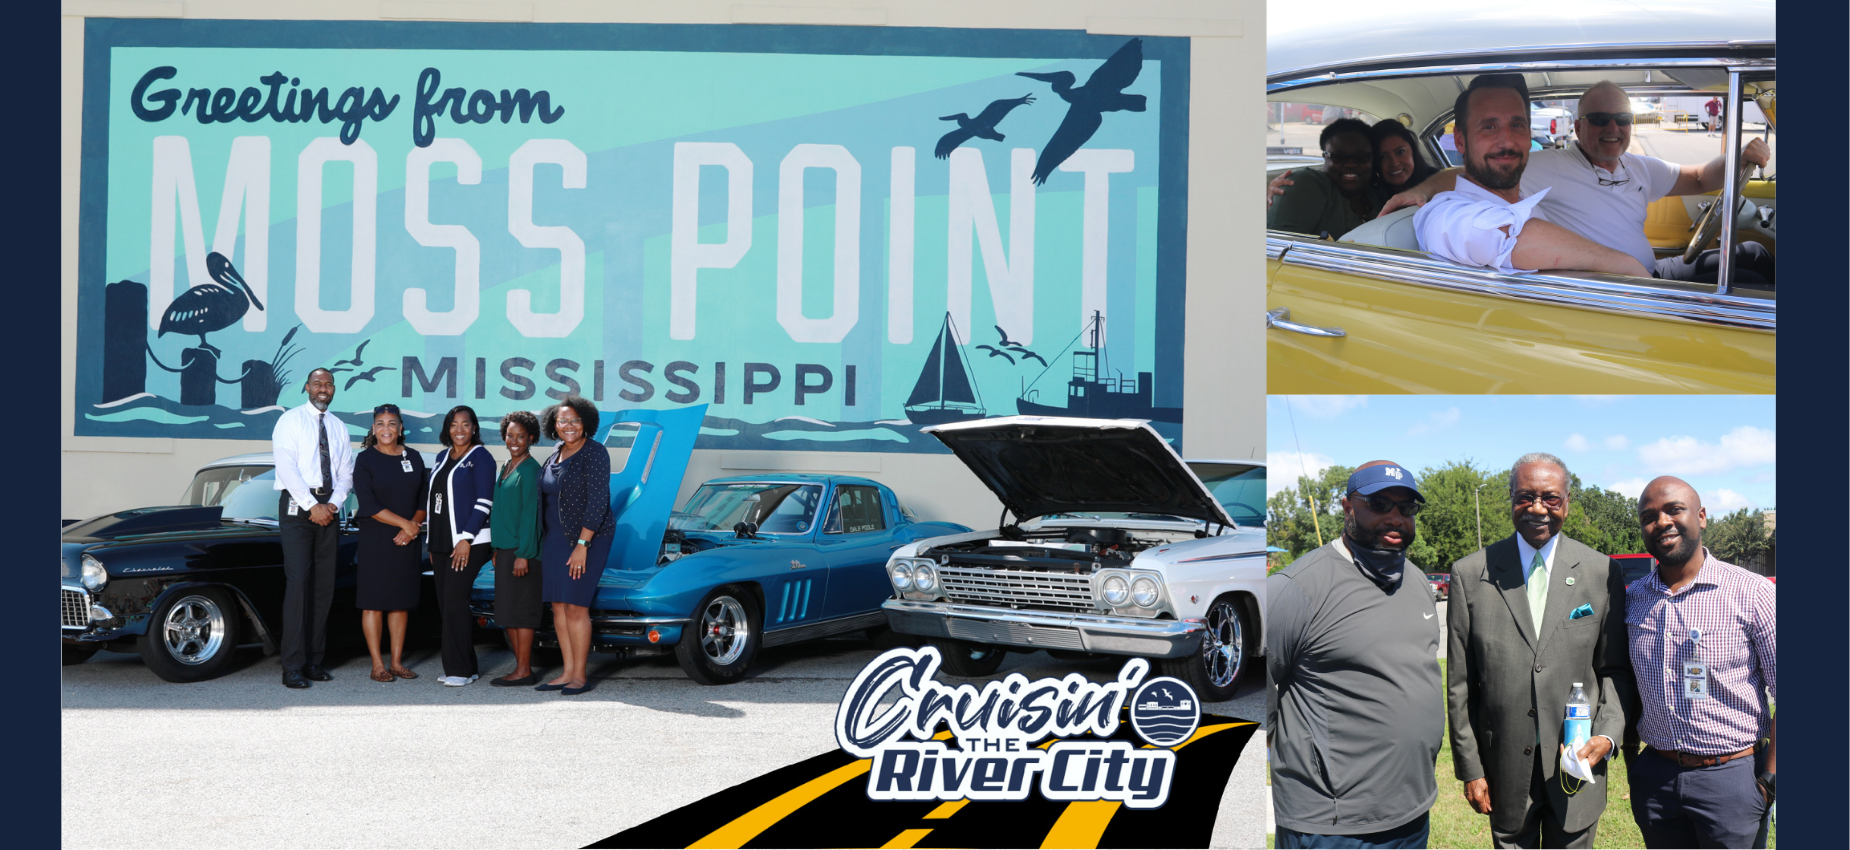 Cruising The River City with MPSD - 2021